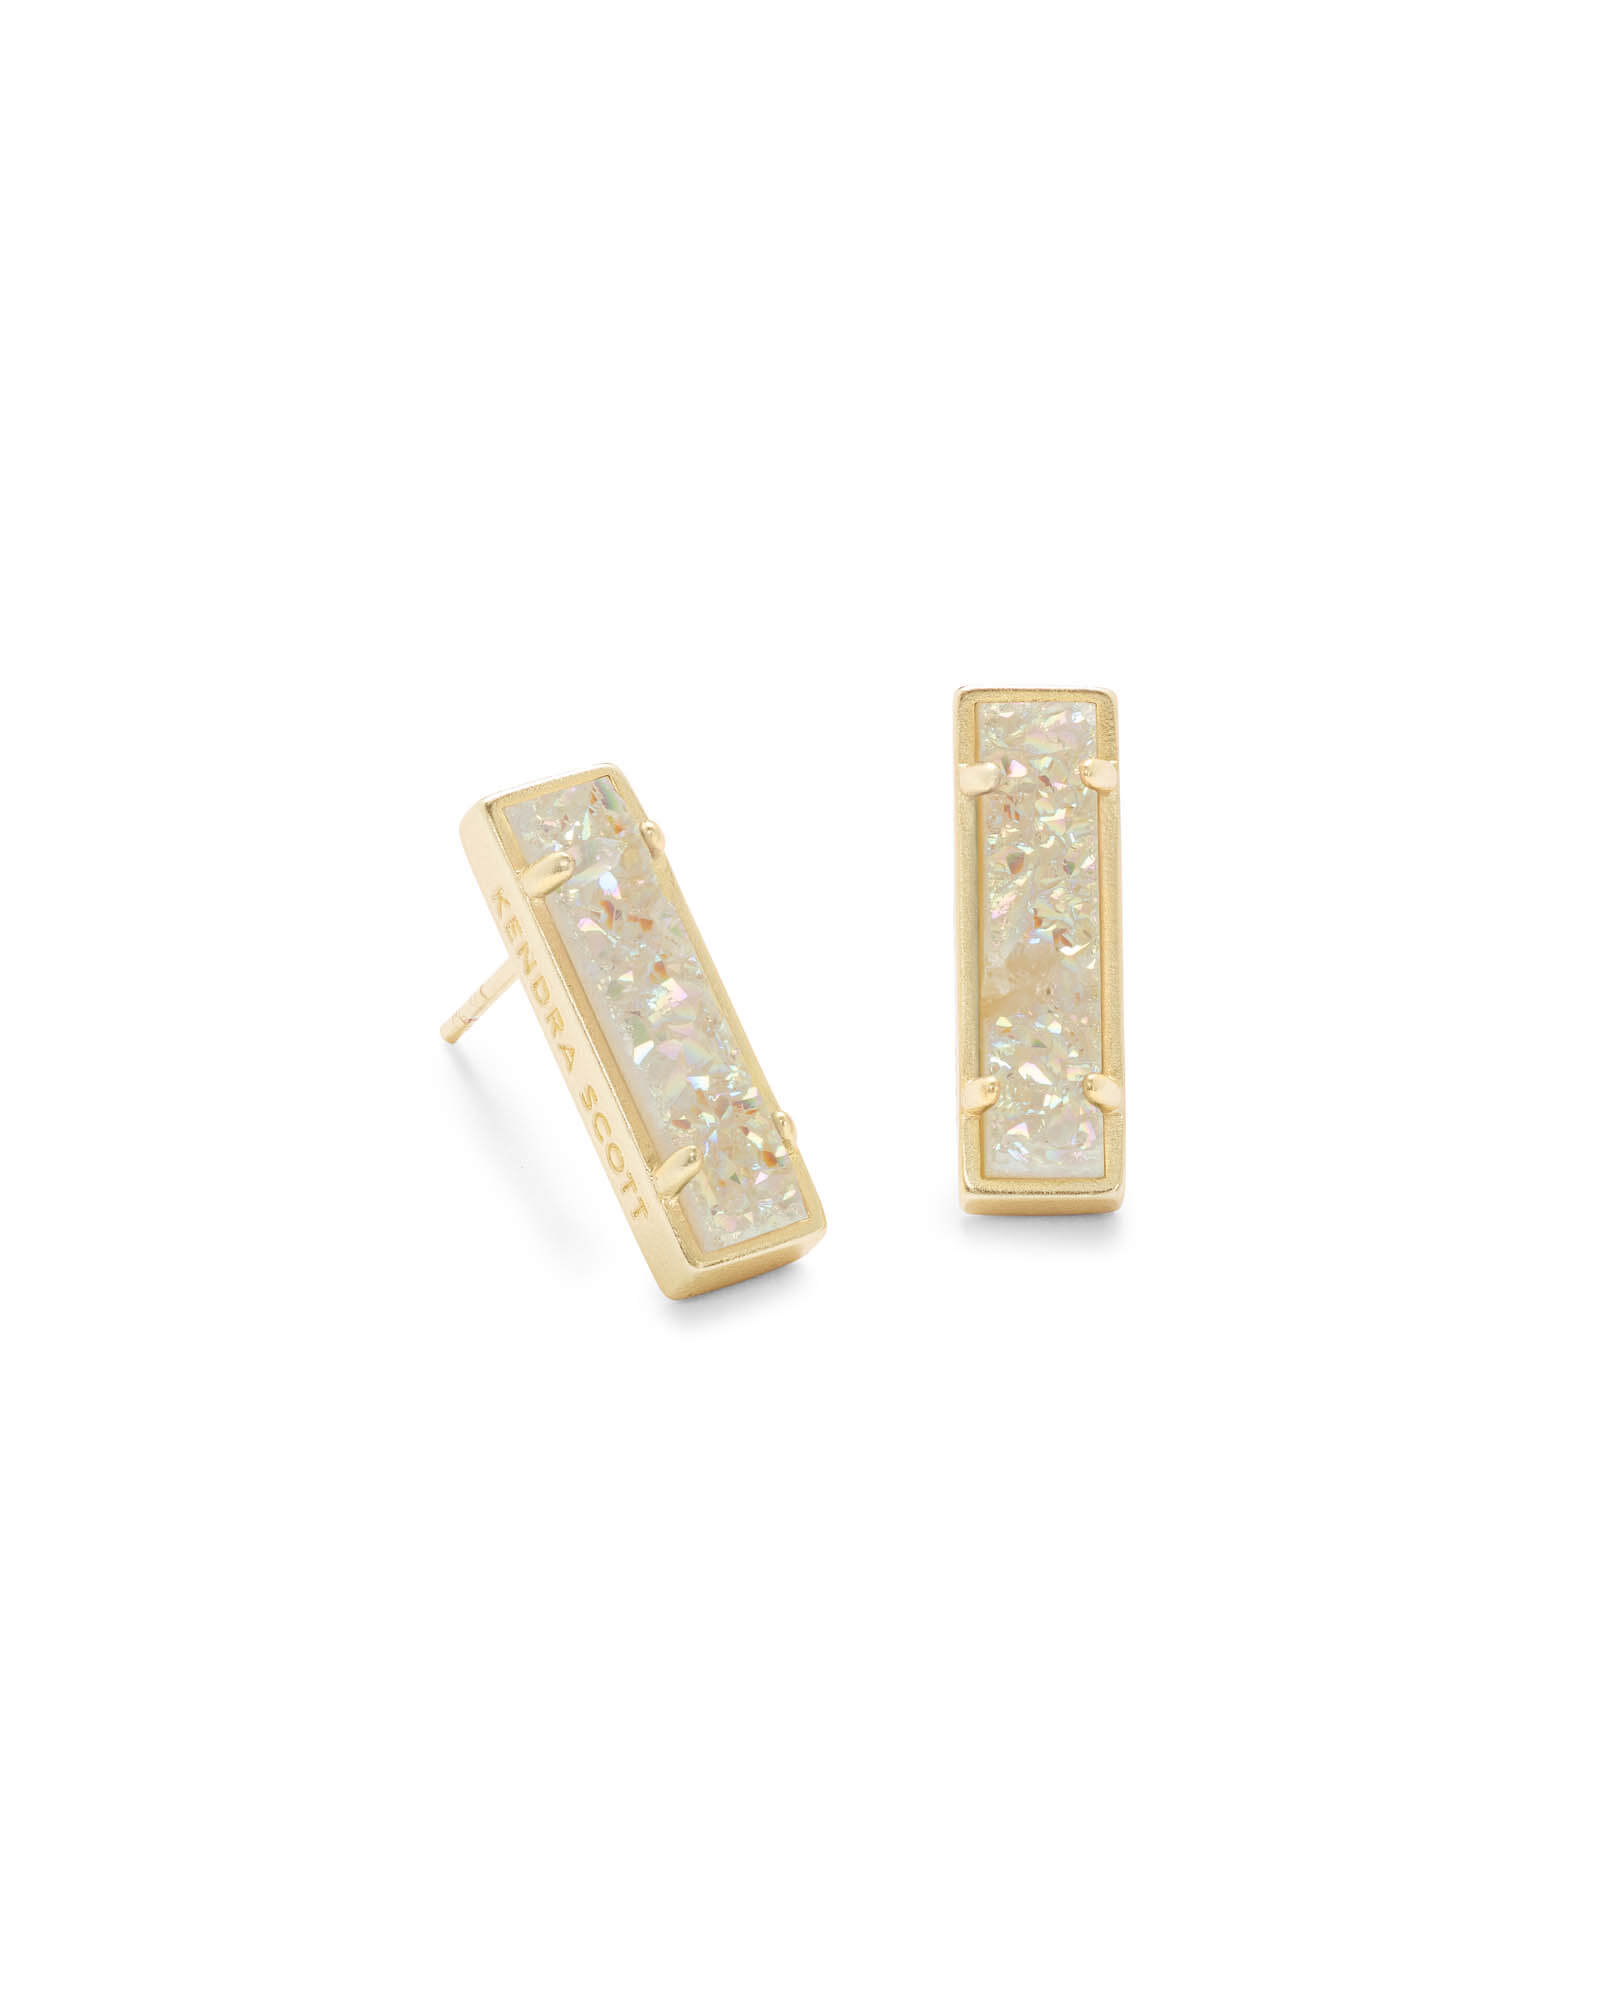 Lady Stud Earrings in Gold